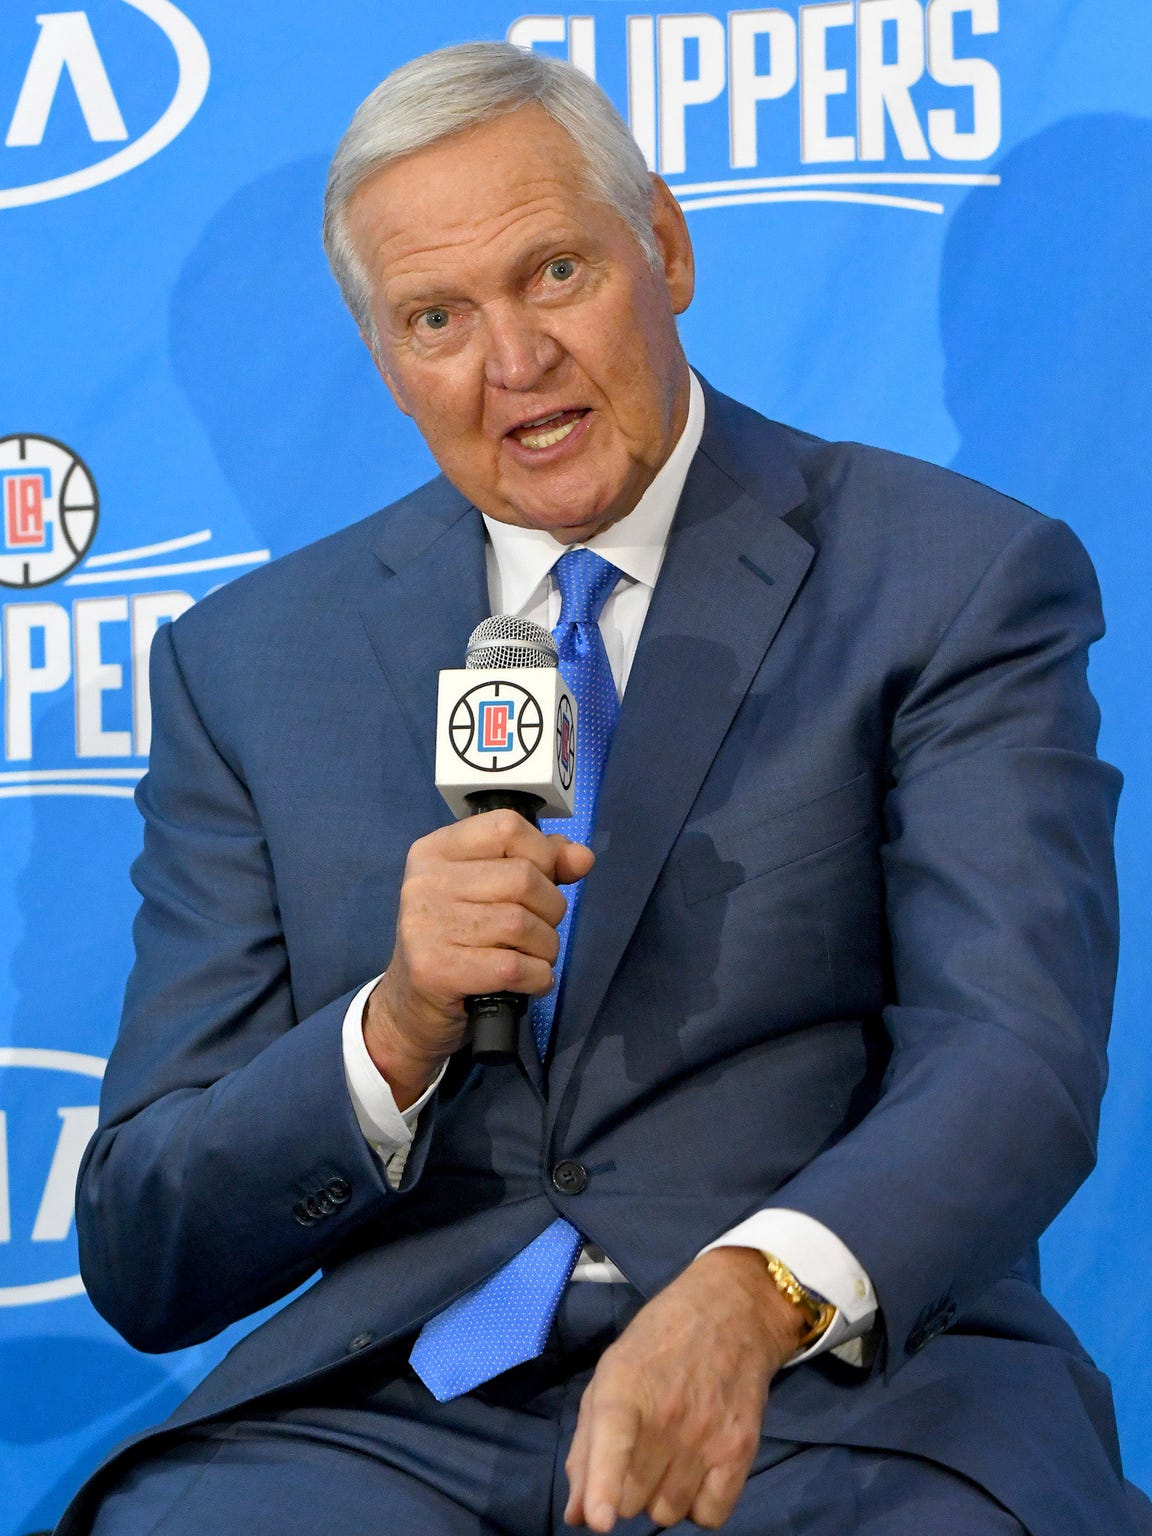 Hall of Famer Jerry West, a highly-successful executive